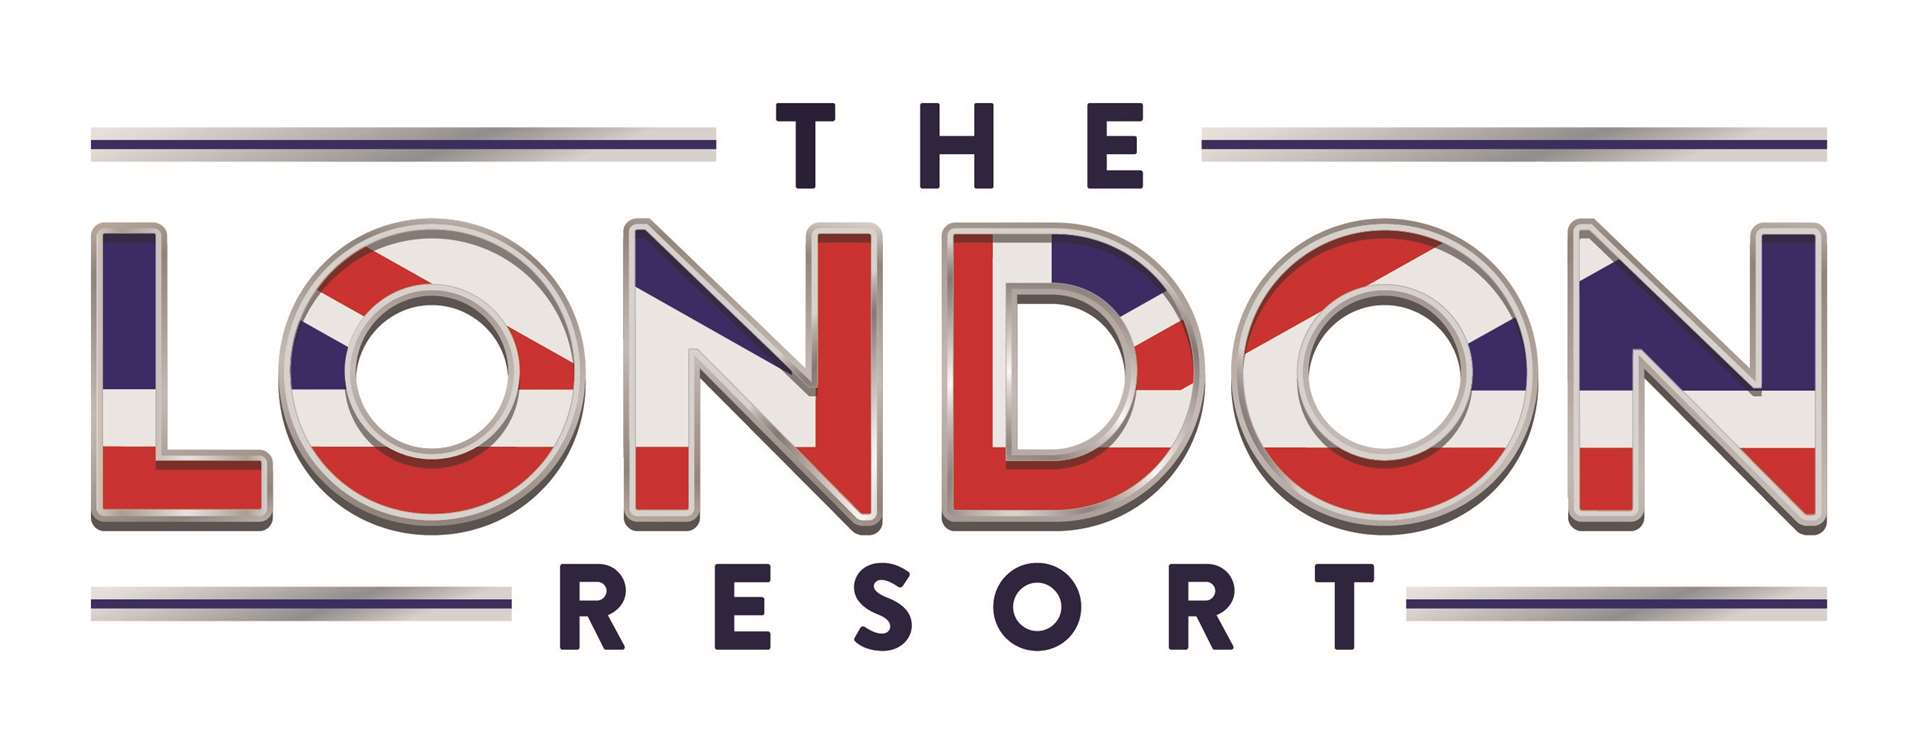 Developers have revealed a new logo for The London Resort